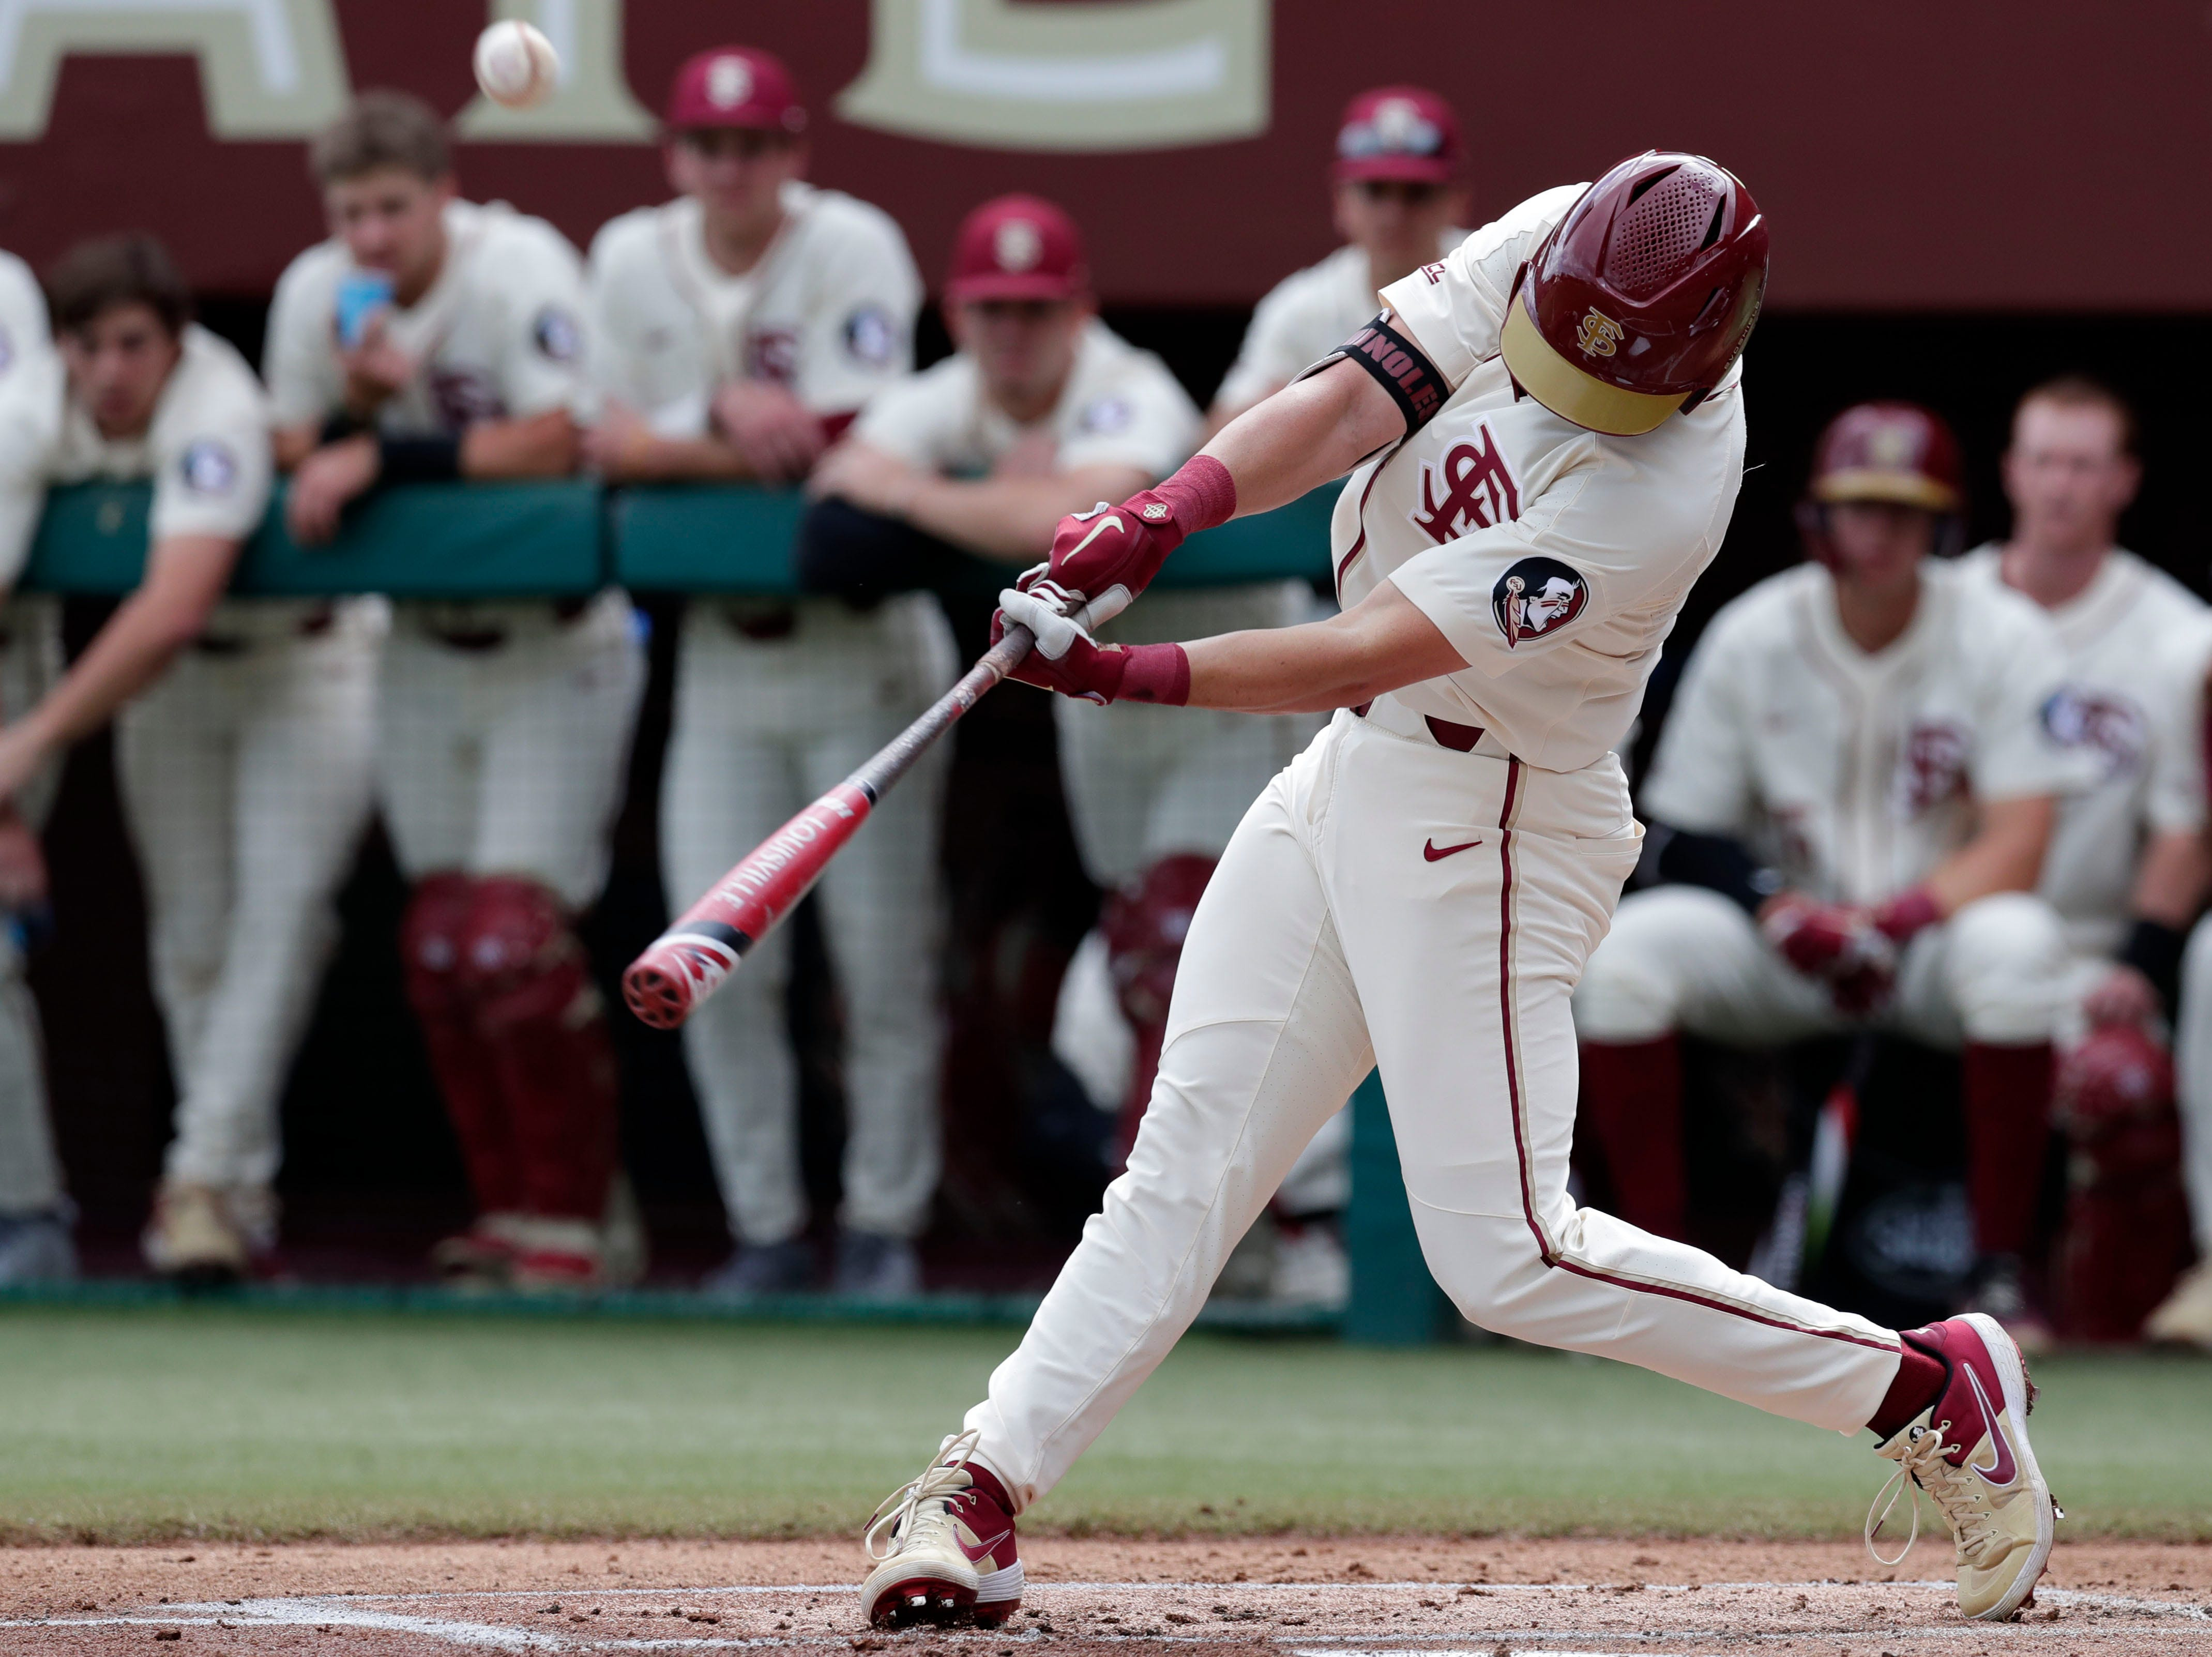 Florida State Seminoles outfielder/left handed pitcher Reese Albert (23) swings at the pitch as the Florida State Seminoles host the Maine Black Bears for the second game of the series, Saturday Feb. 16, 2019.